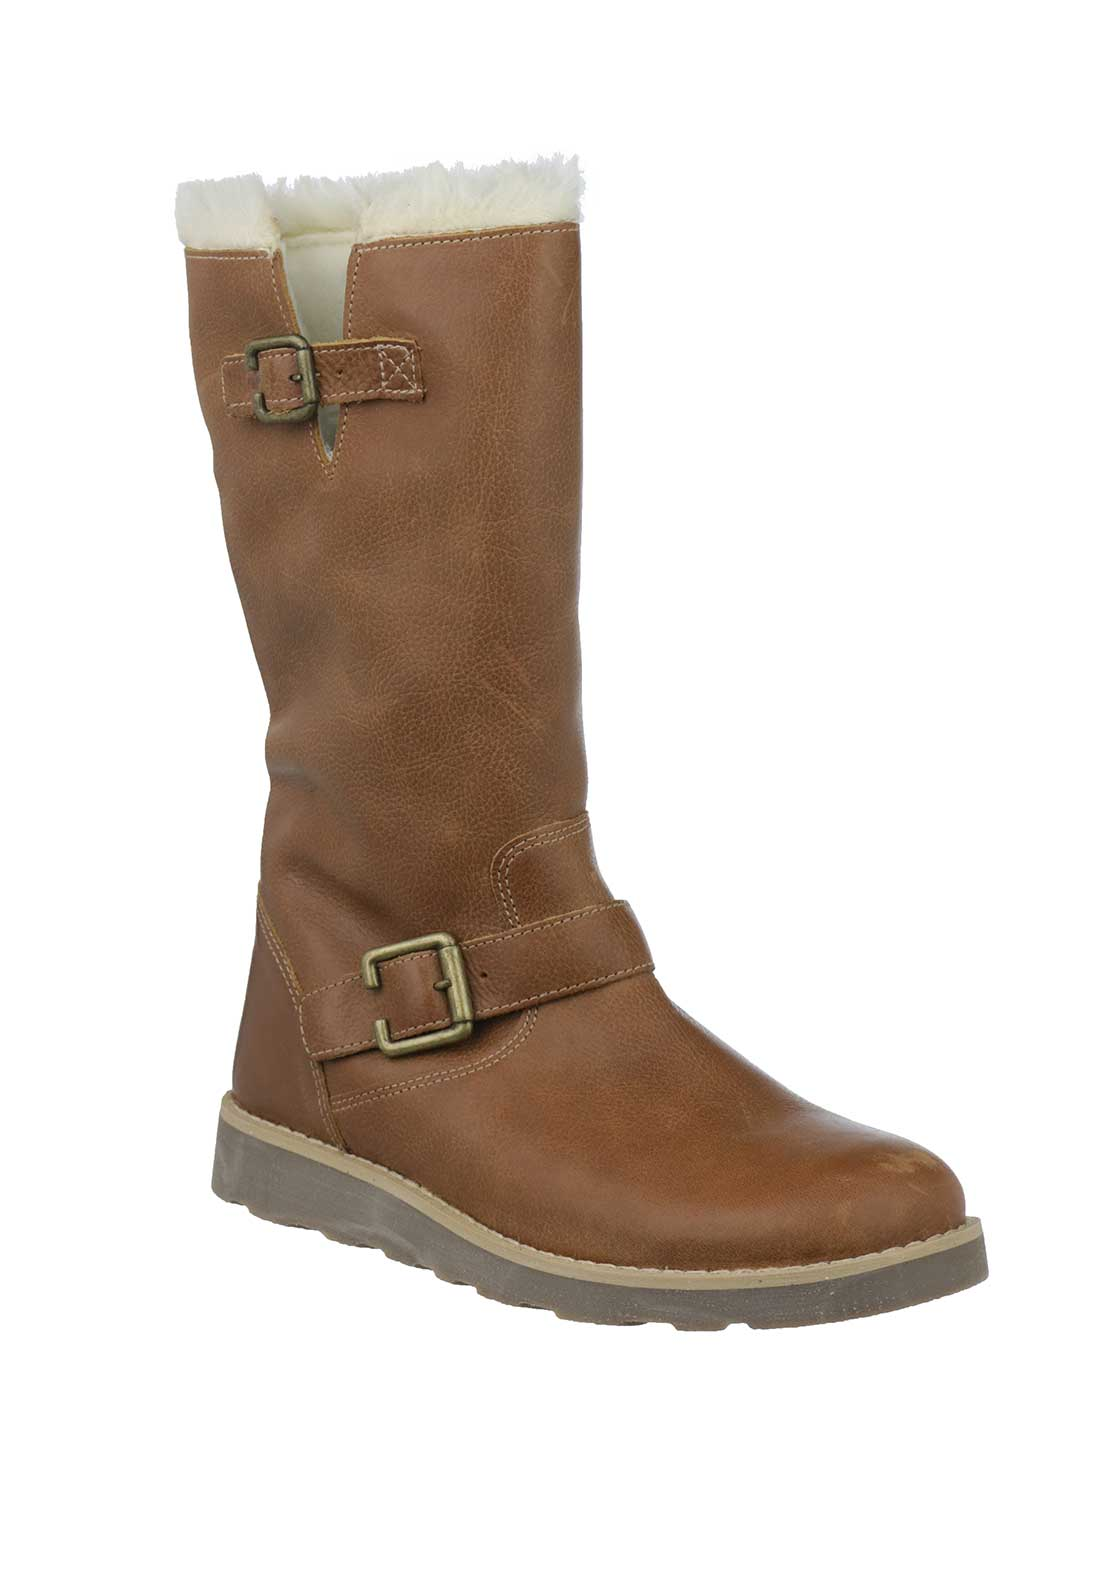 Dubarry Girls Talaya Leather Boots, Tan